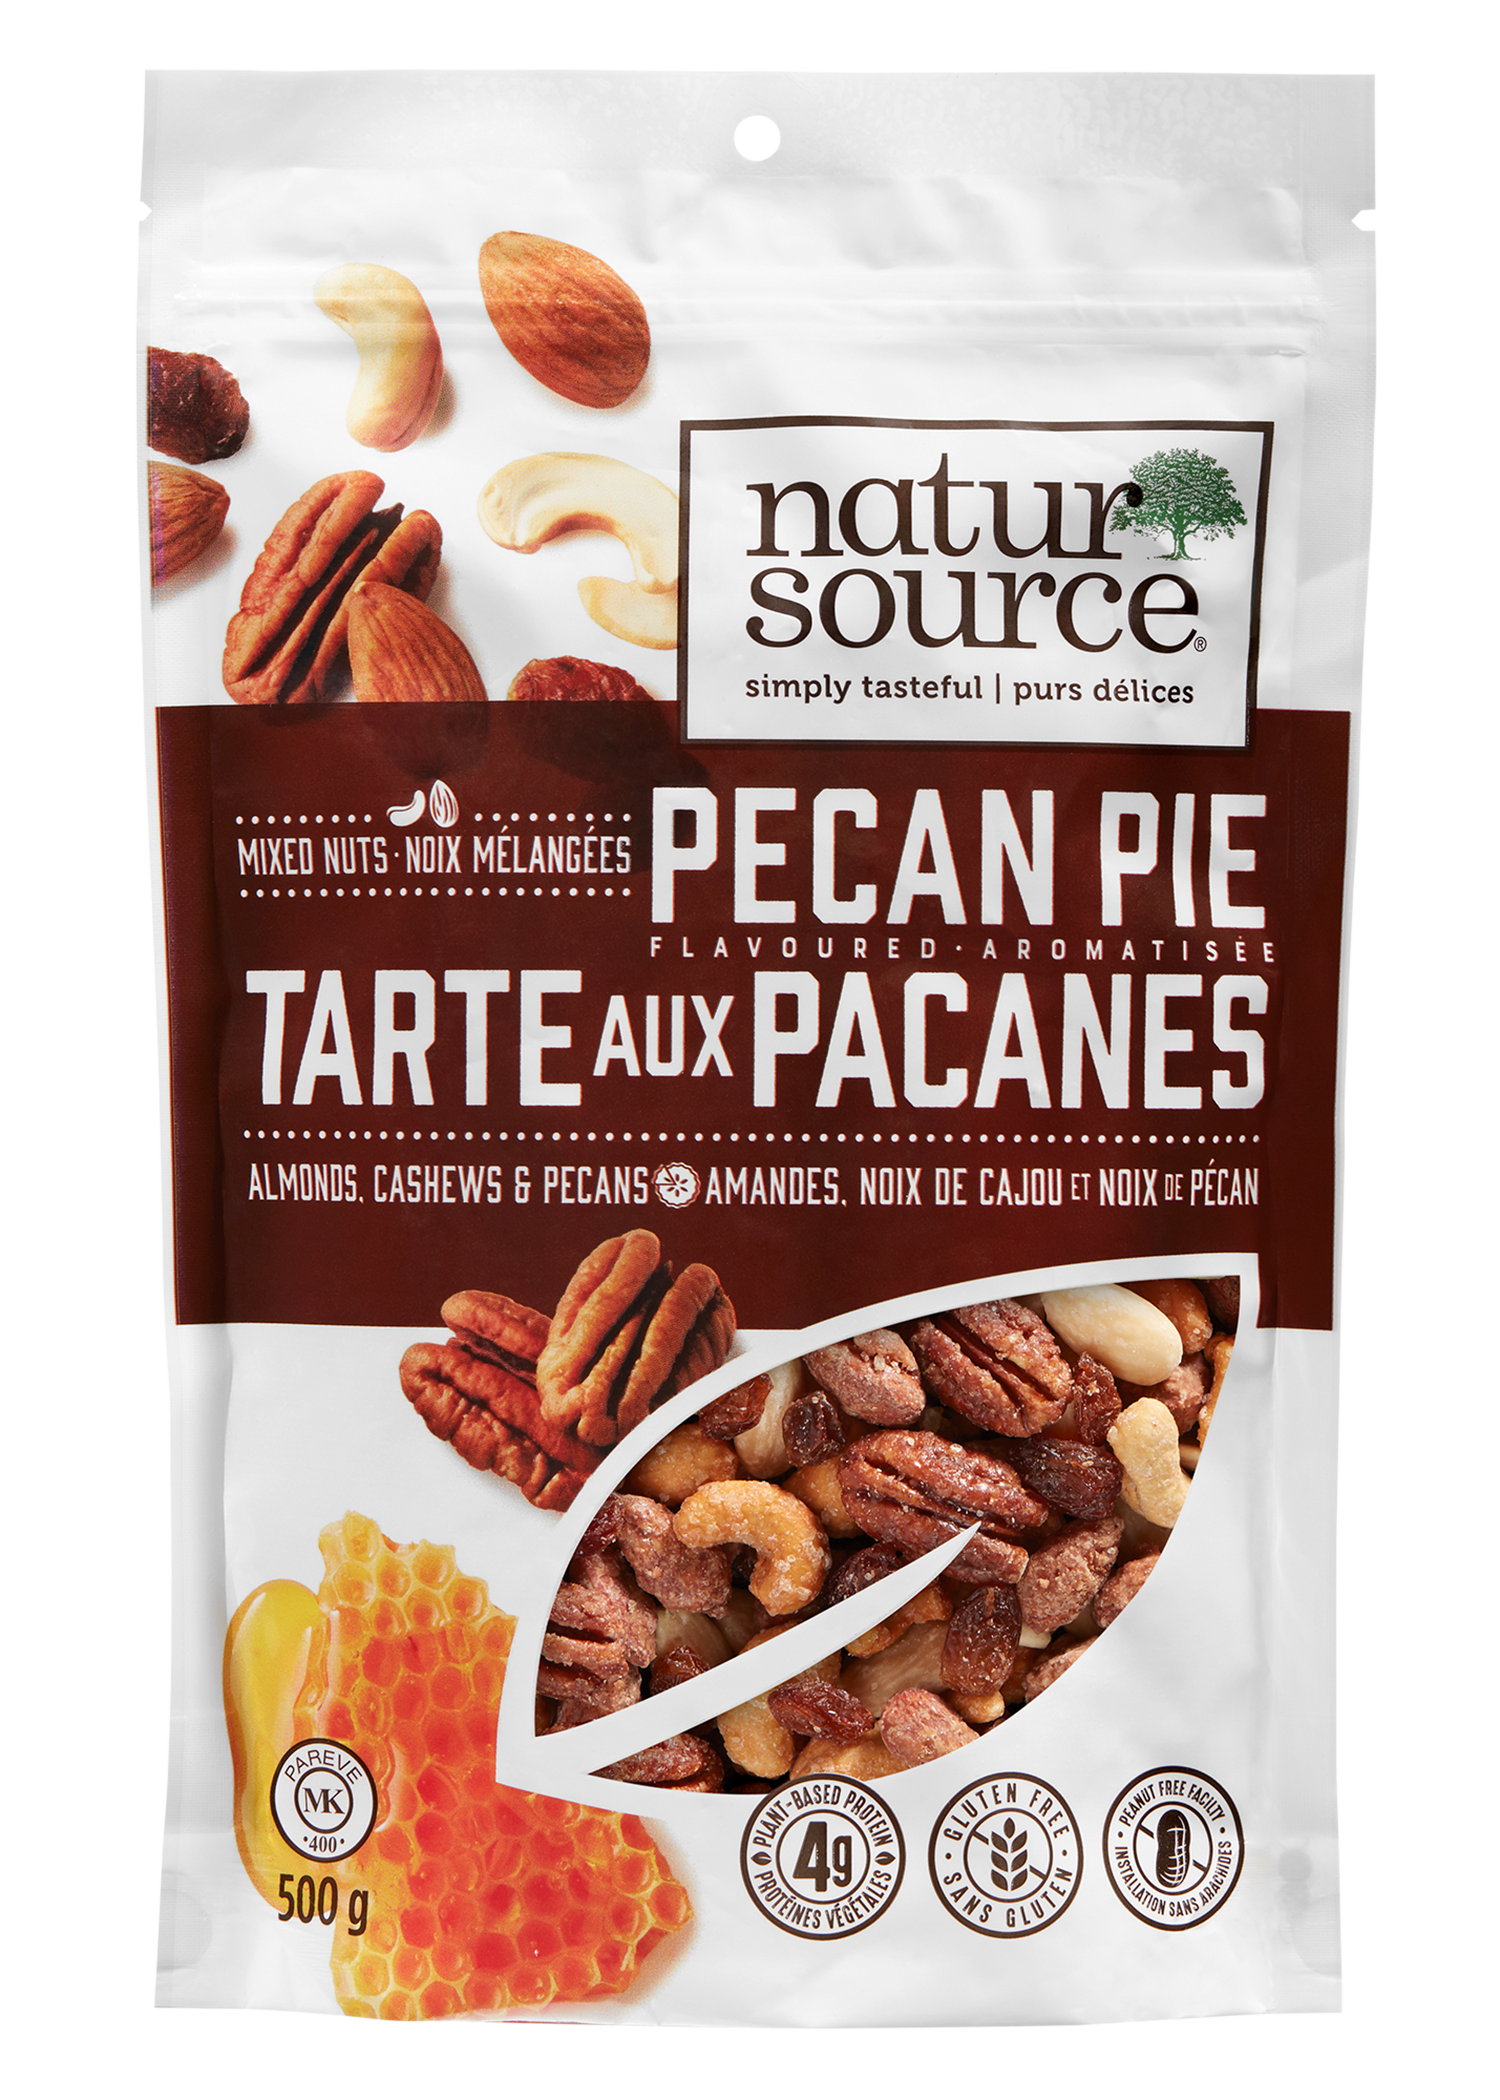 natursource Pecan Pie flavoured nut mix with almonds, cashews and pecans